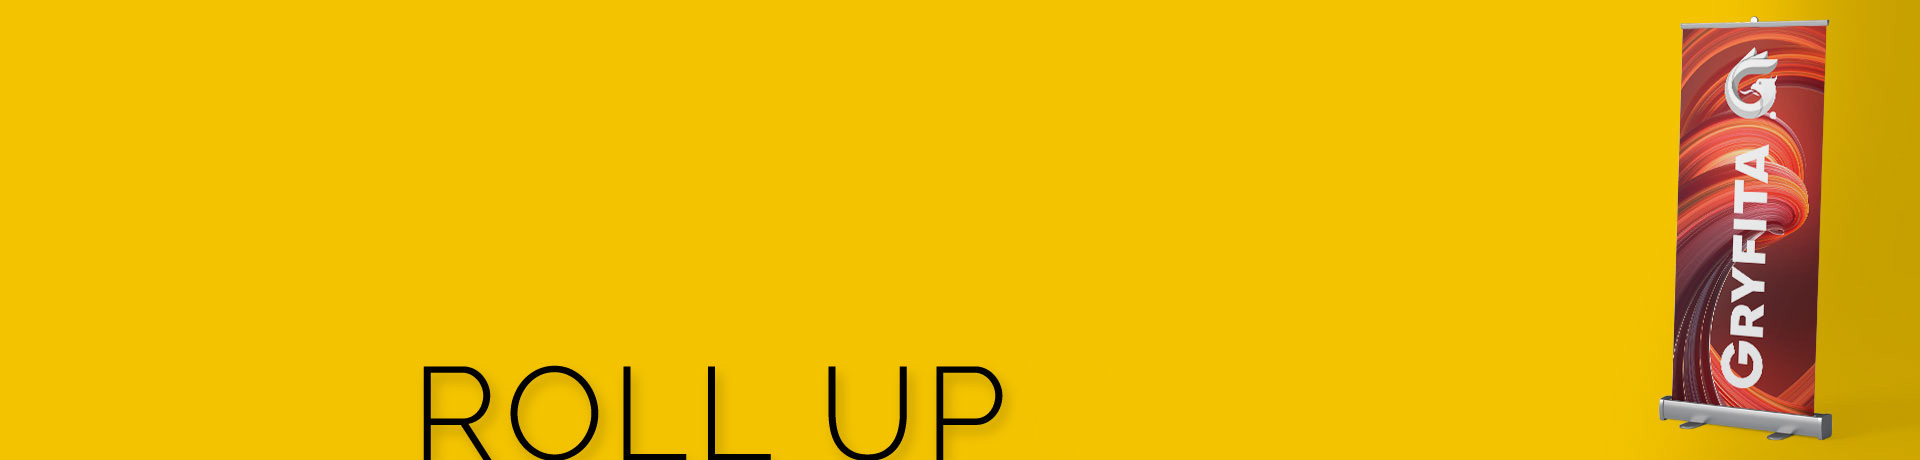 roll up - gryfita studio reklamy